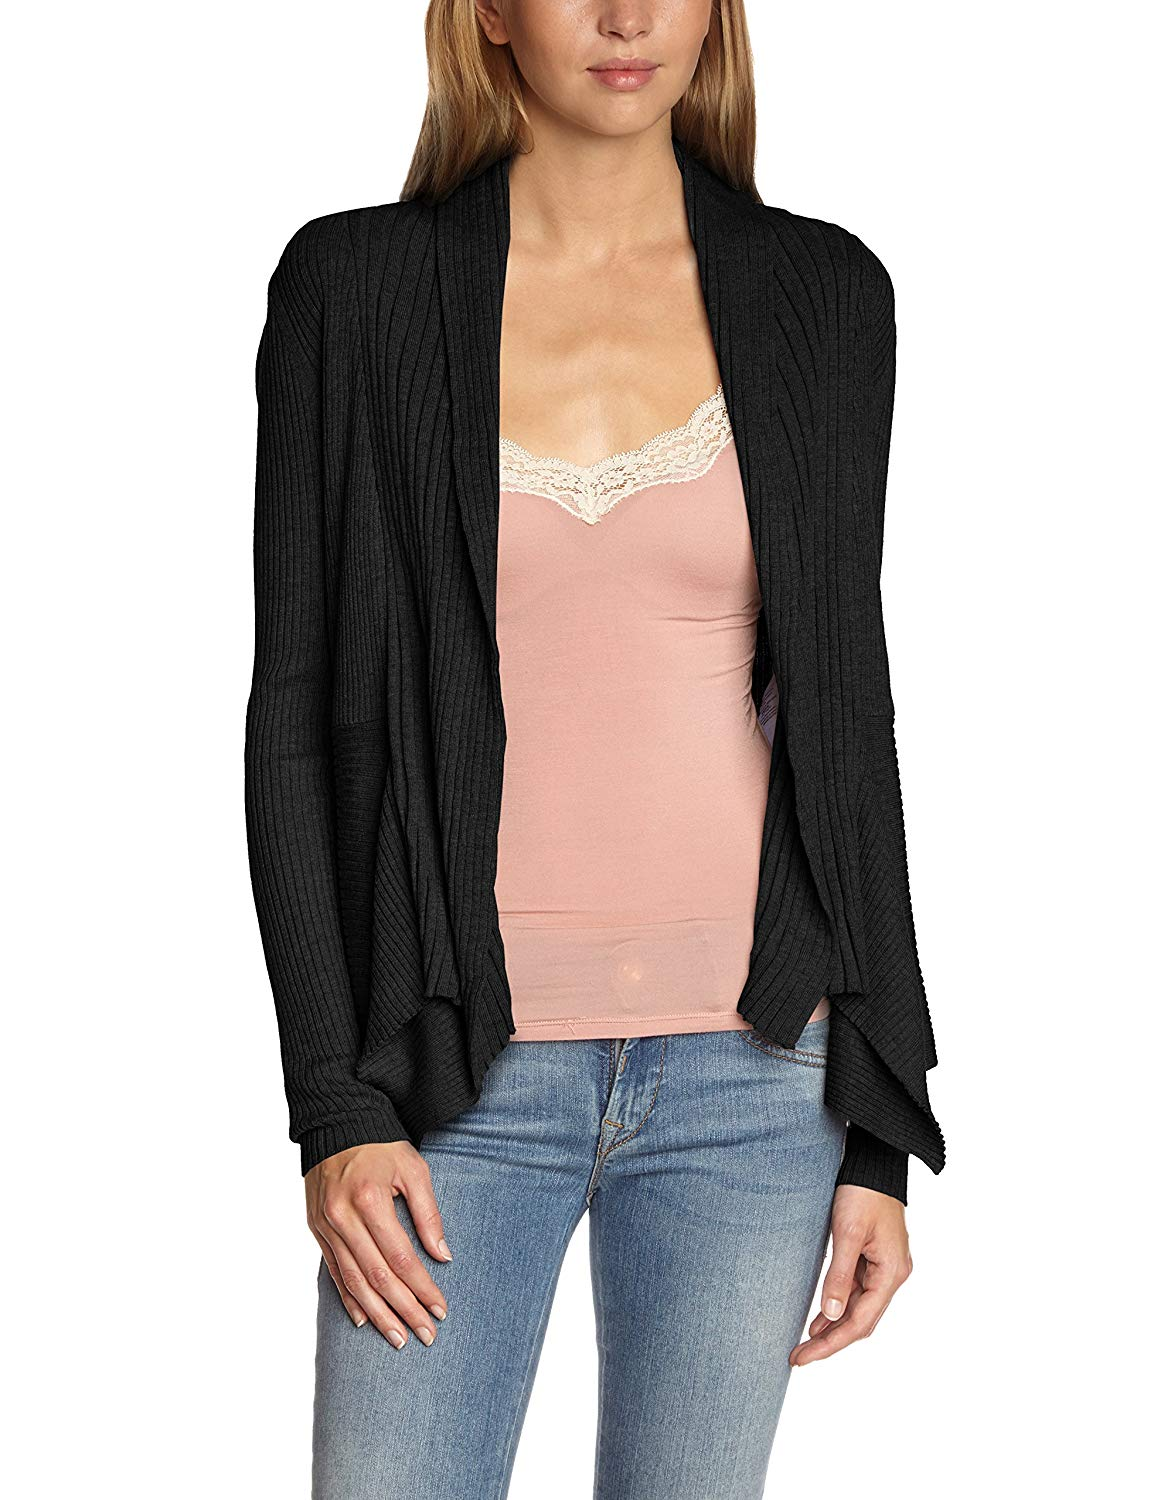 ESPRIT CARDIGANS esprit womenu0027s cardigan xsmall black at amazon womenu0027s clothing store: KHRRZBC